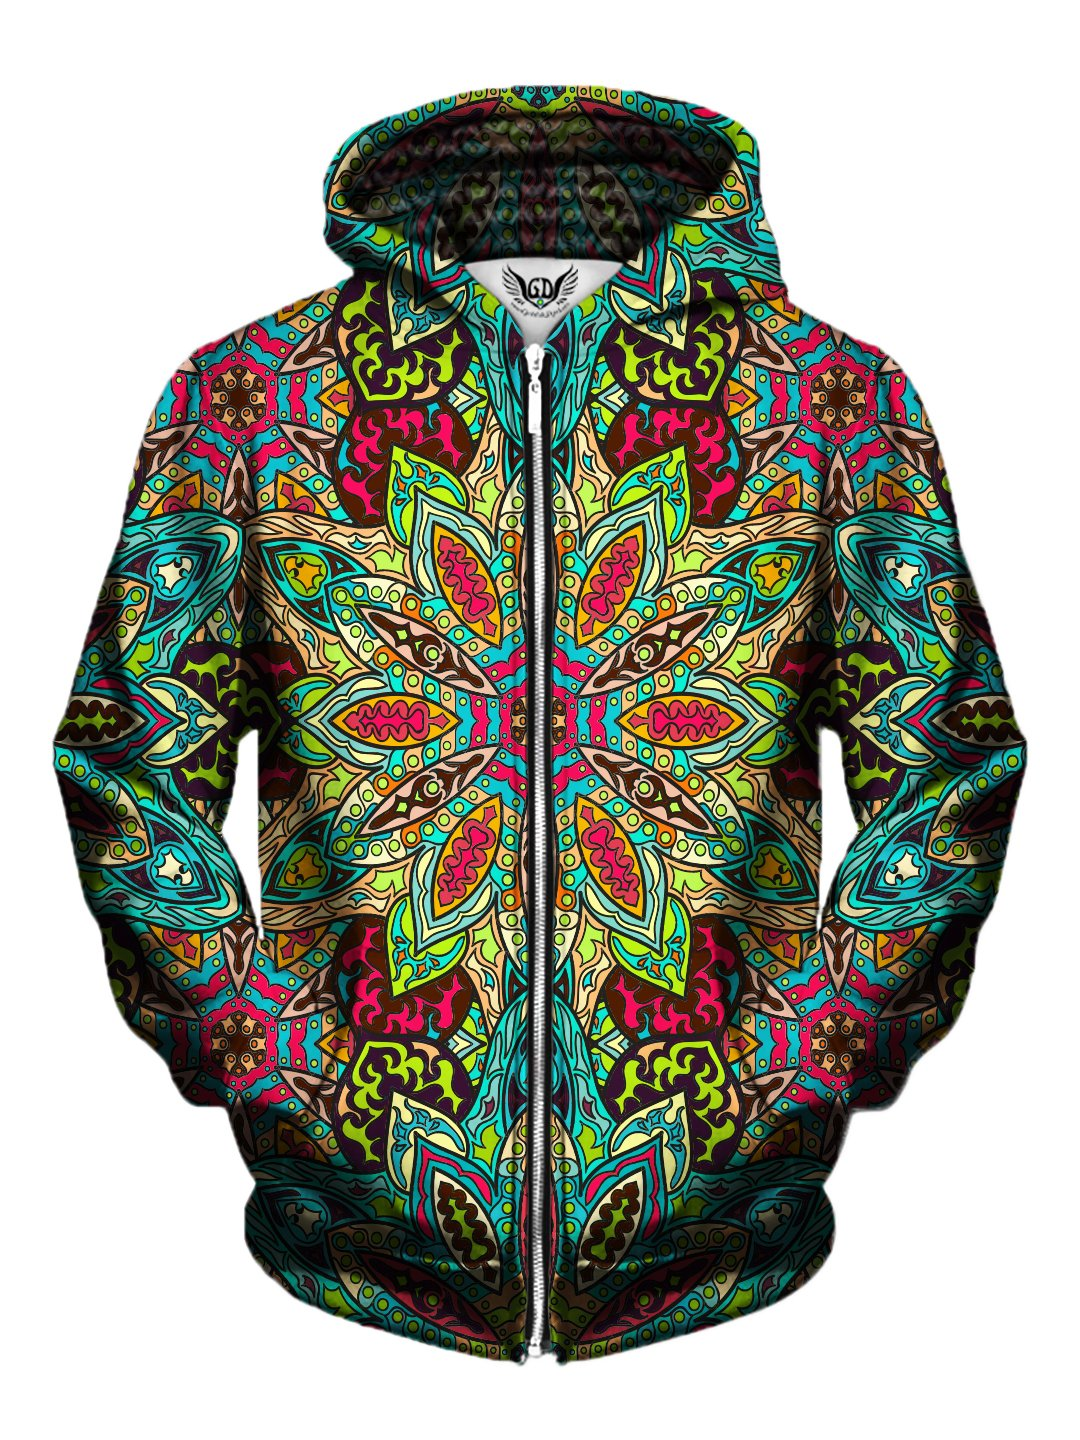 Men's rainbow flower mandala zip-up hoodie front view.